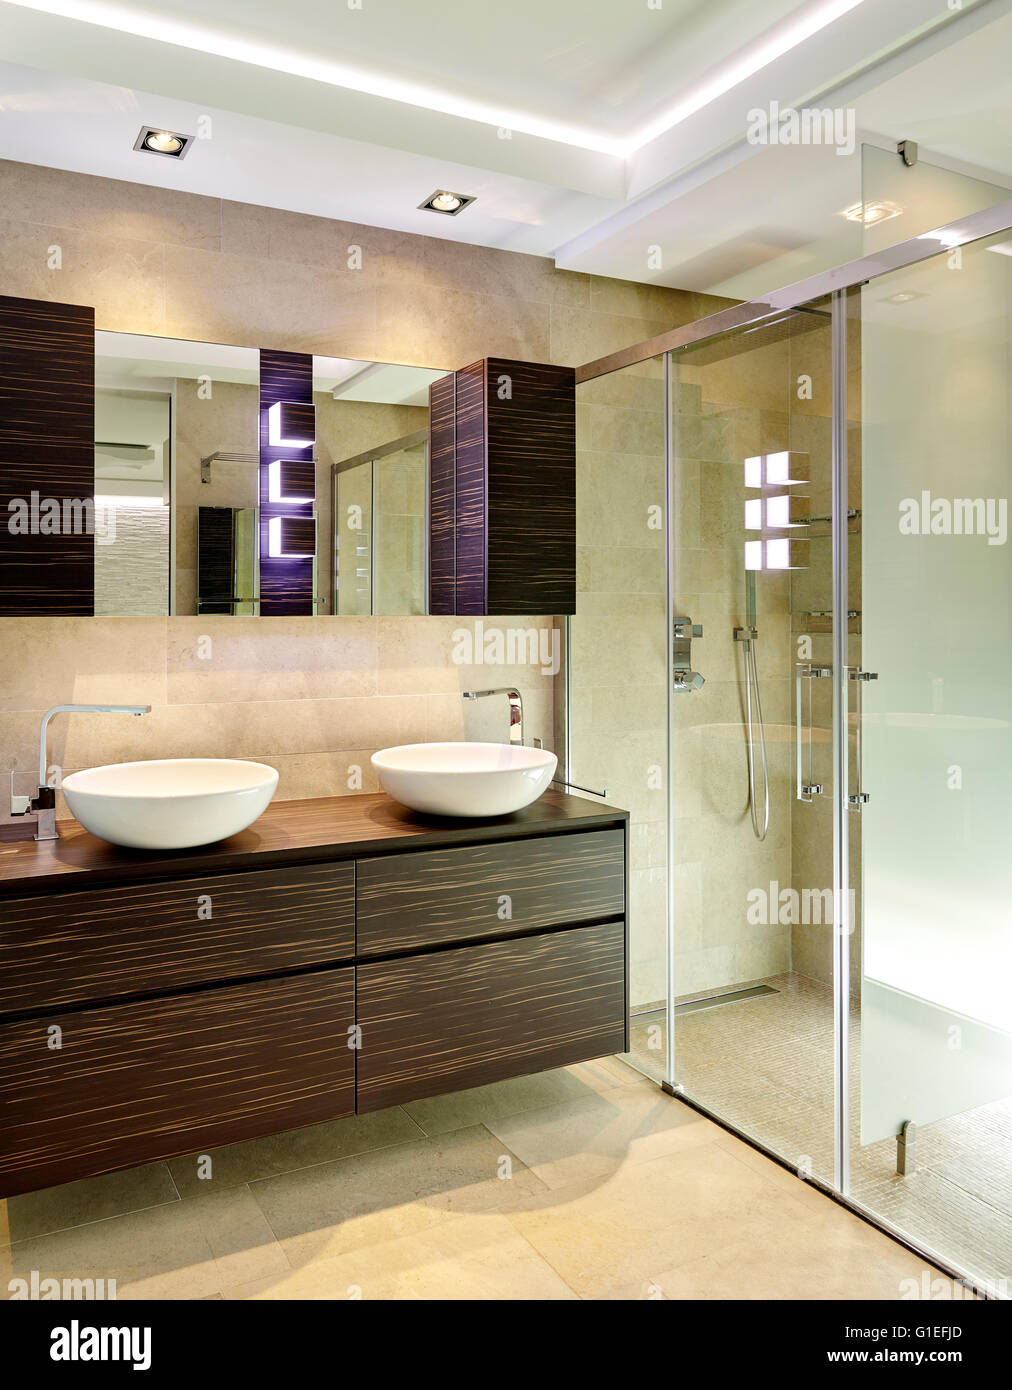 White house bathroom - Stock Photo White House L Ametlla Modern Bathroom With Shower Cubicle Double Sinks And Wood Cabinets